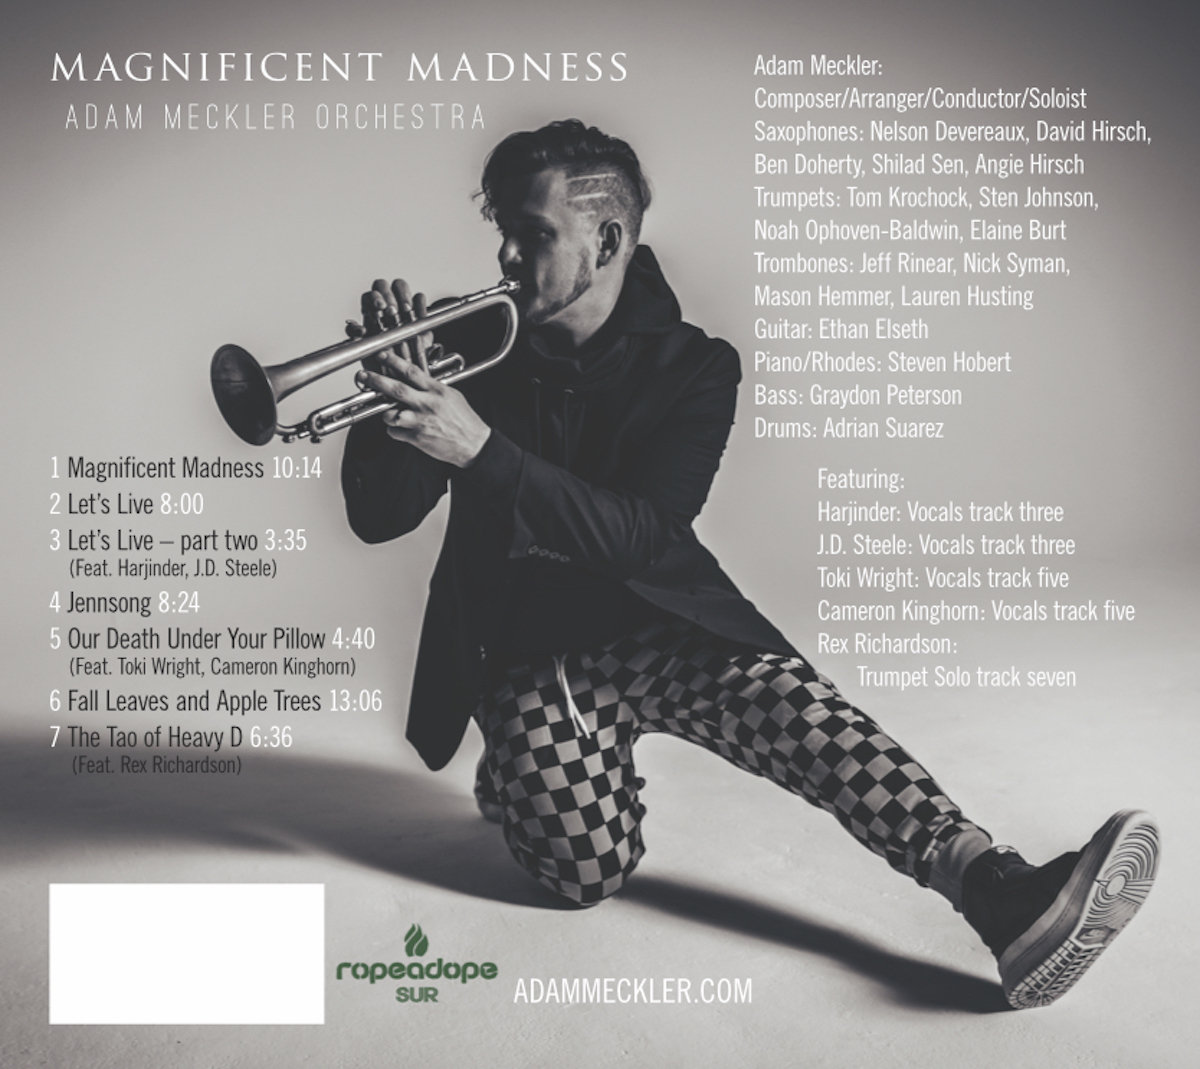 Magnificent Madness | The Adam Meckler Orchestra